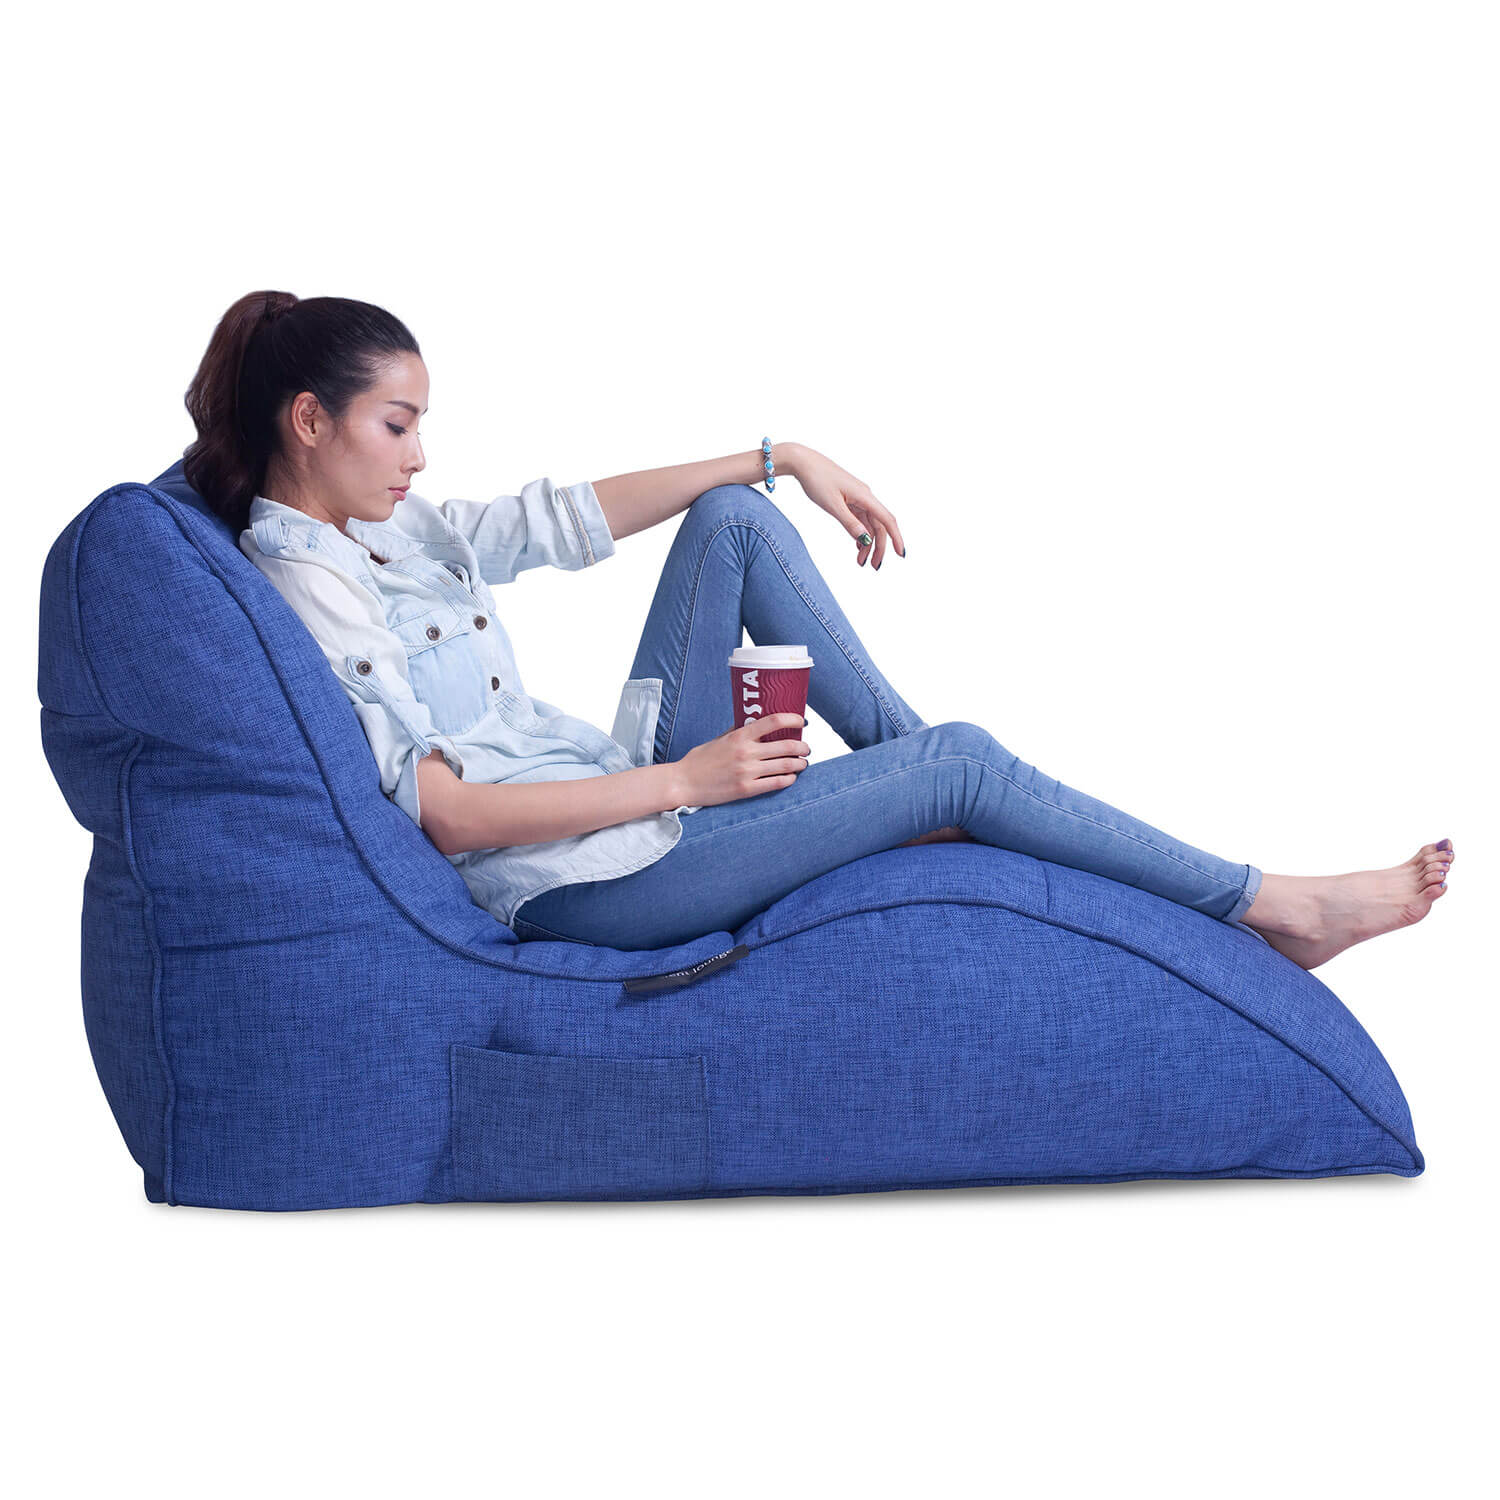 Home Cinema Indoor Bean Bag Avatar Lounger Blue Jazz Bean Bag New Zealand